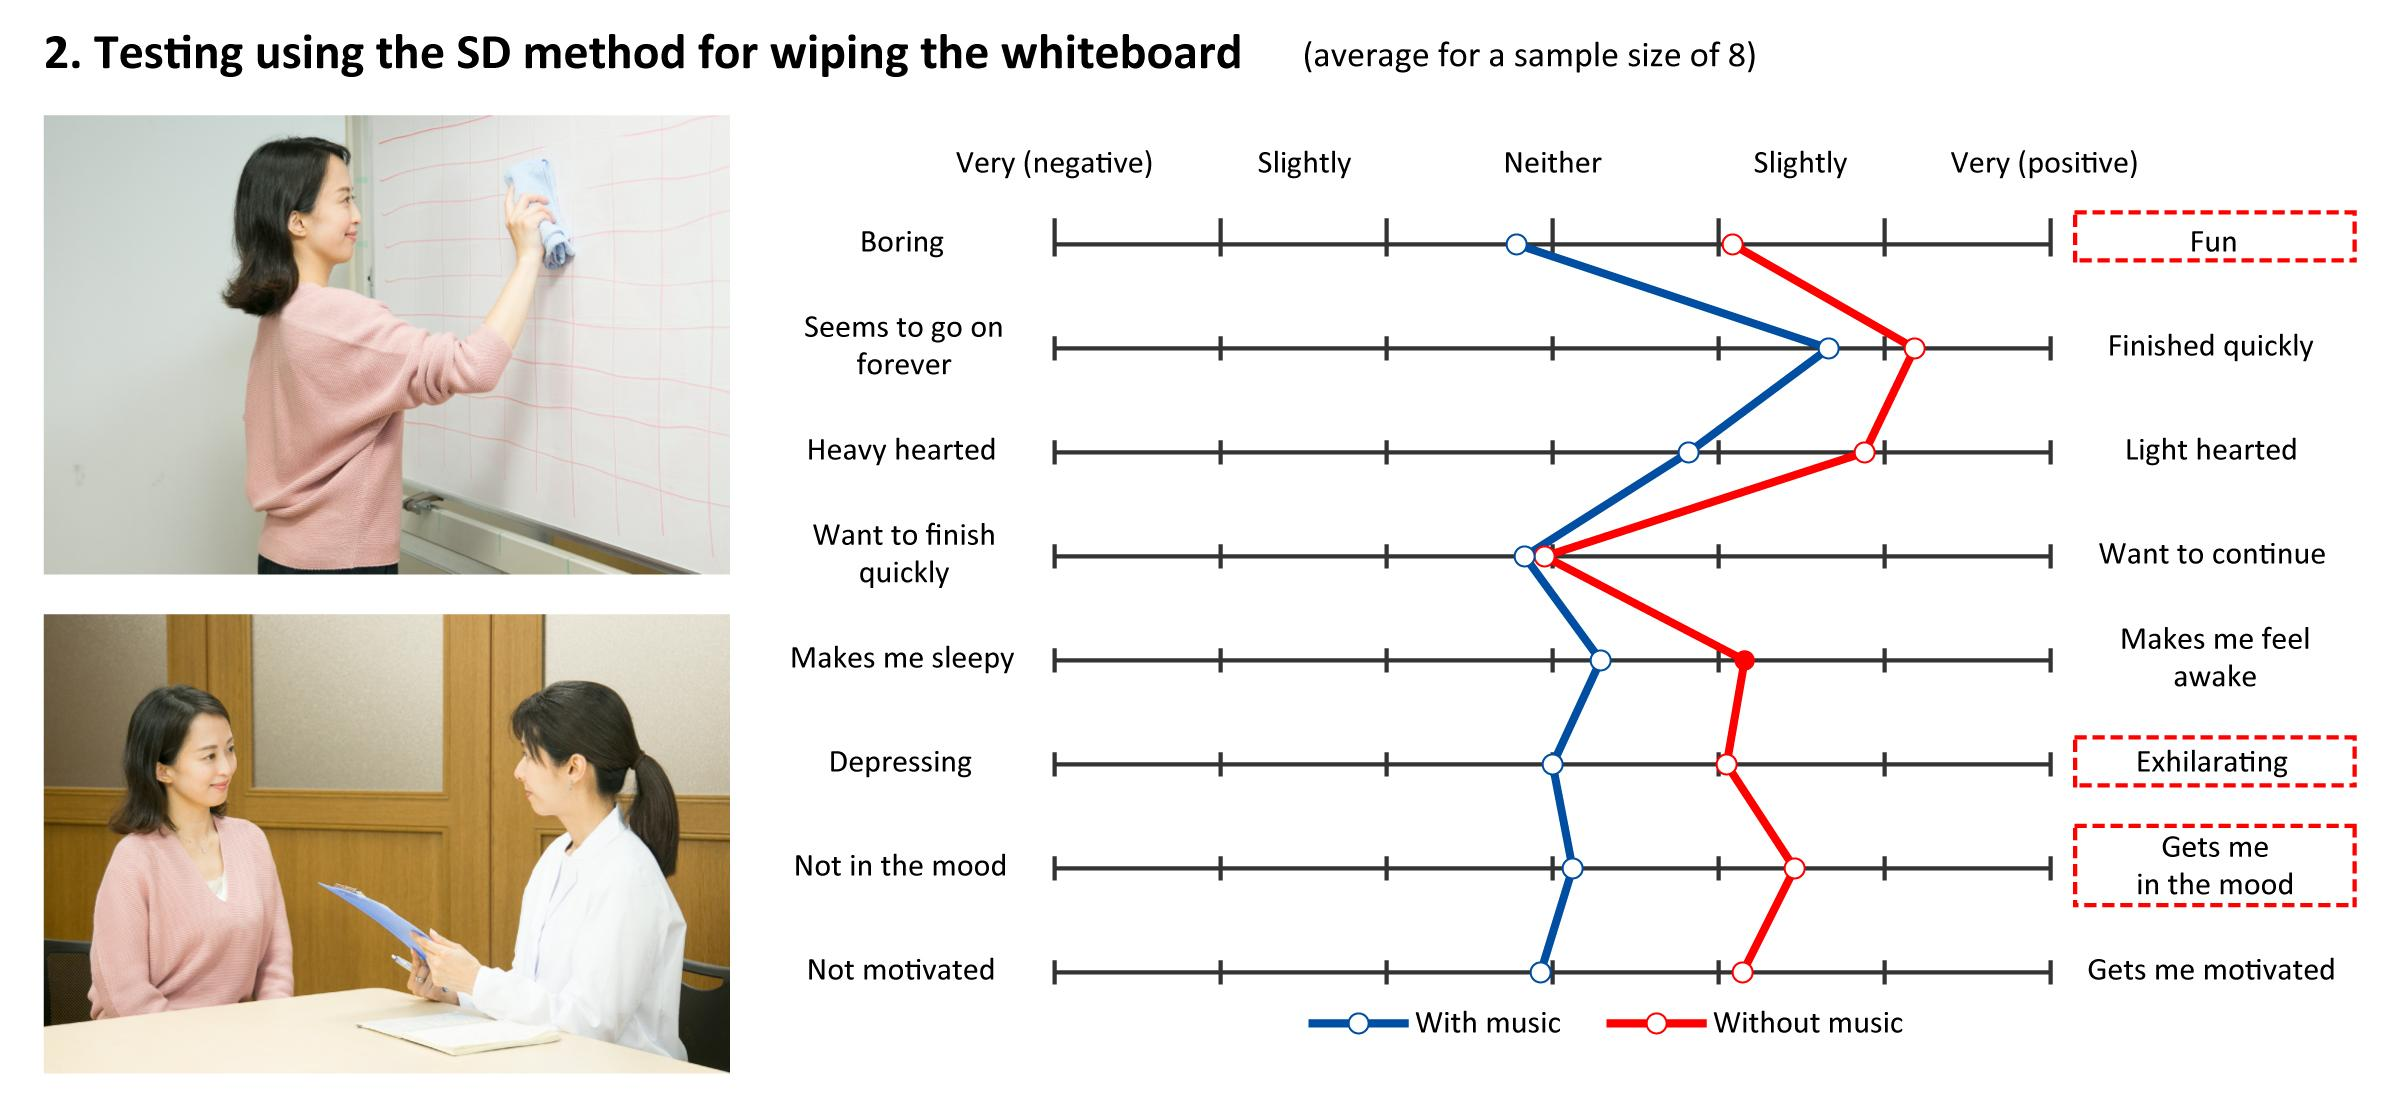 figure: Testing using the SD method for wiping the whiteboard